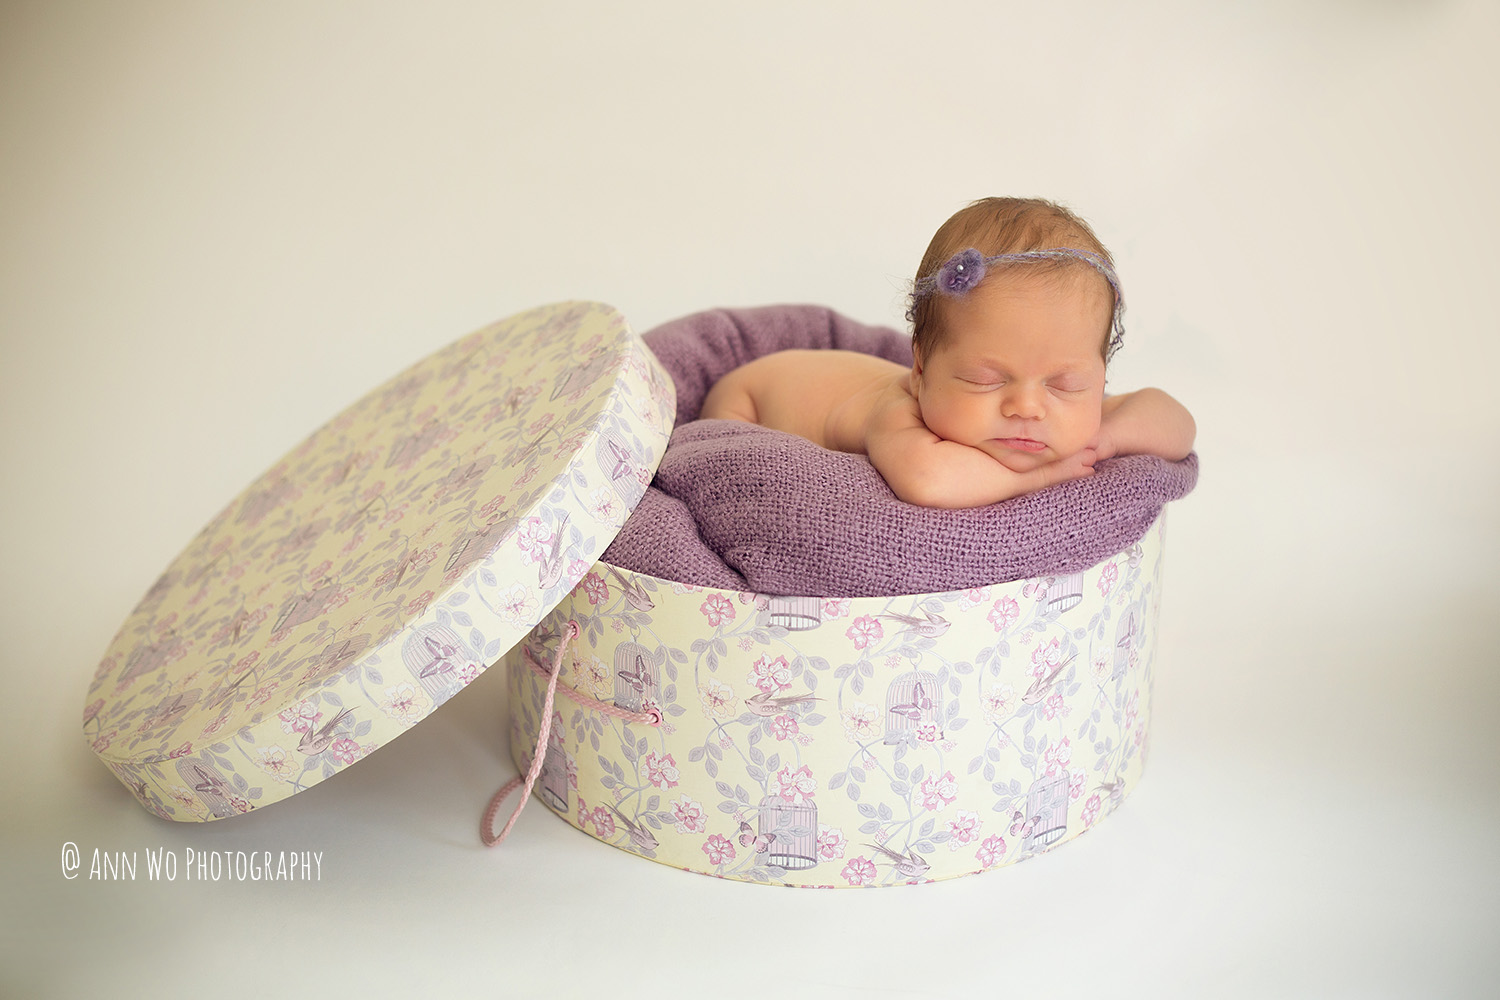 ann-wo-newborn-9Apr-preview-baby-photographer-london.jpg